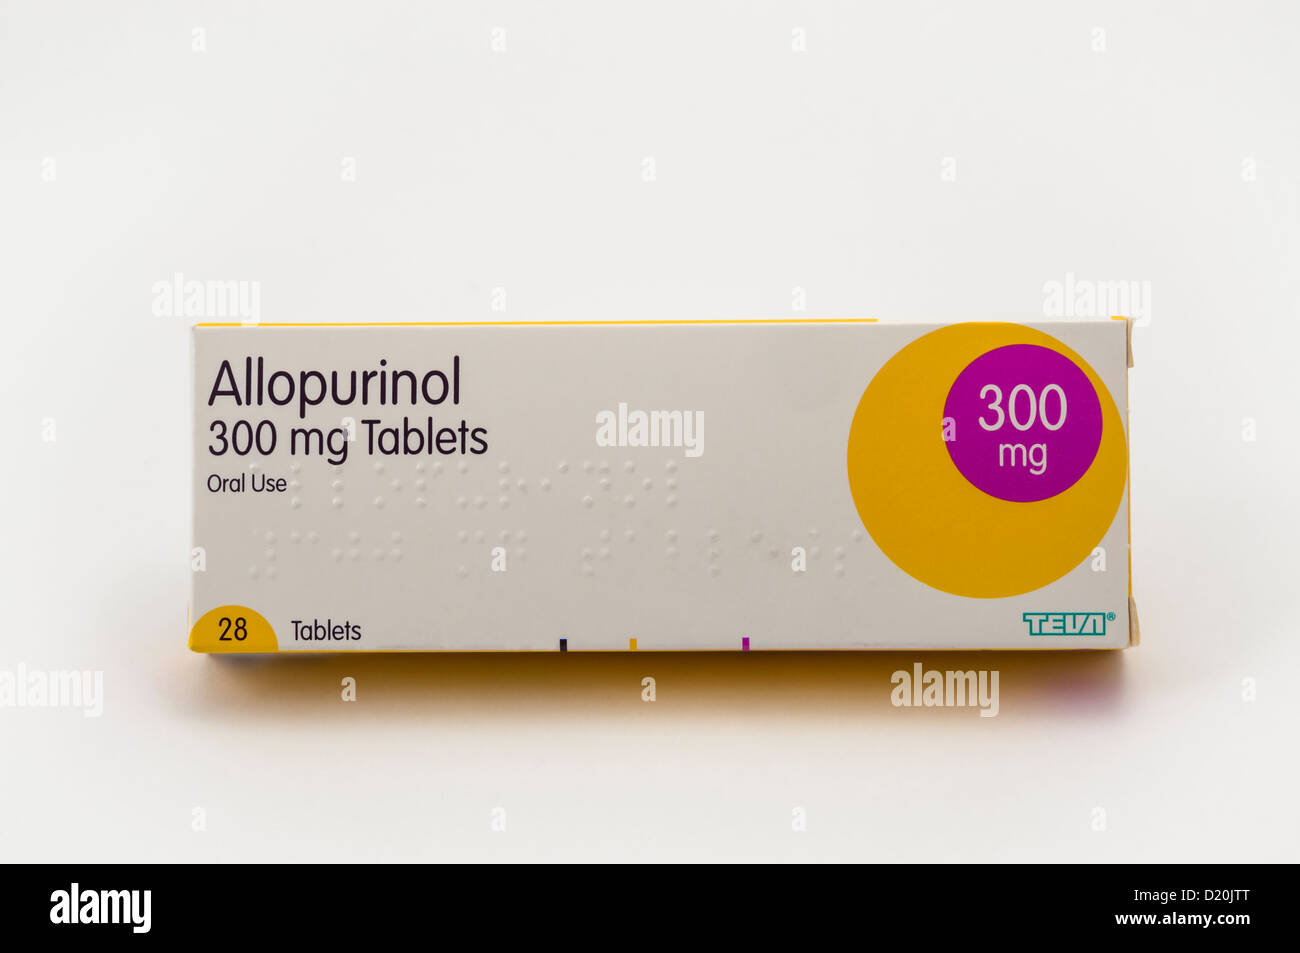 A packet of Allopurinol, a drug used in the treatment of